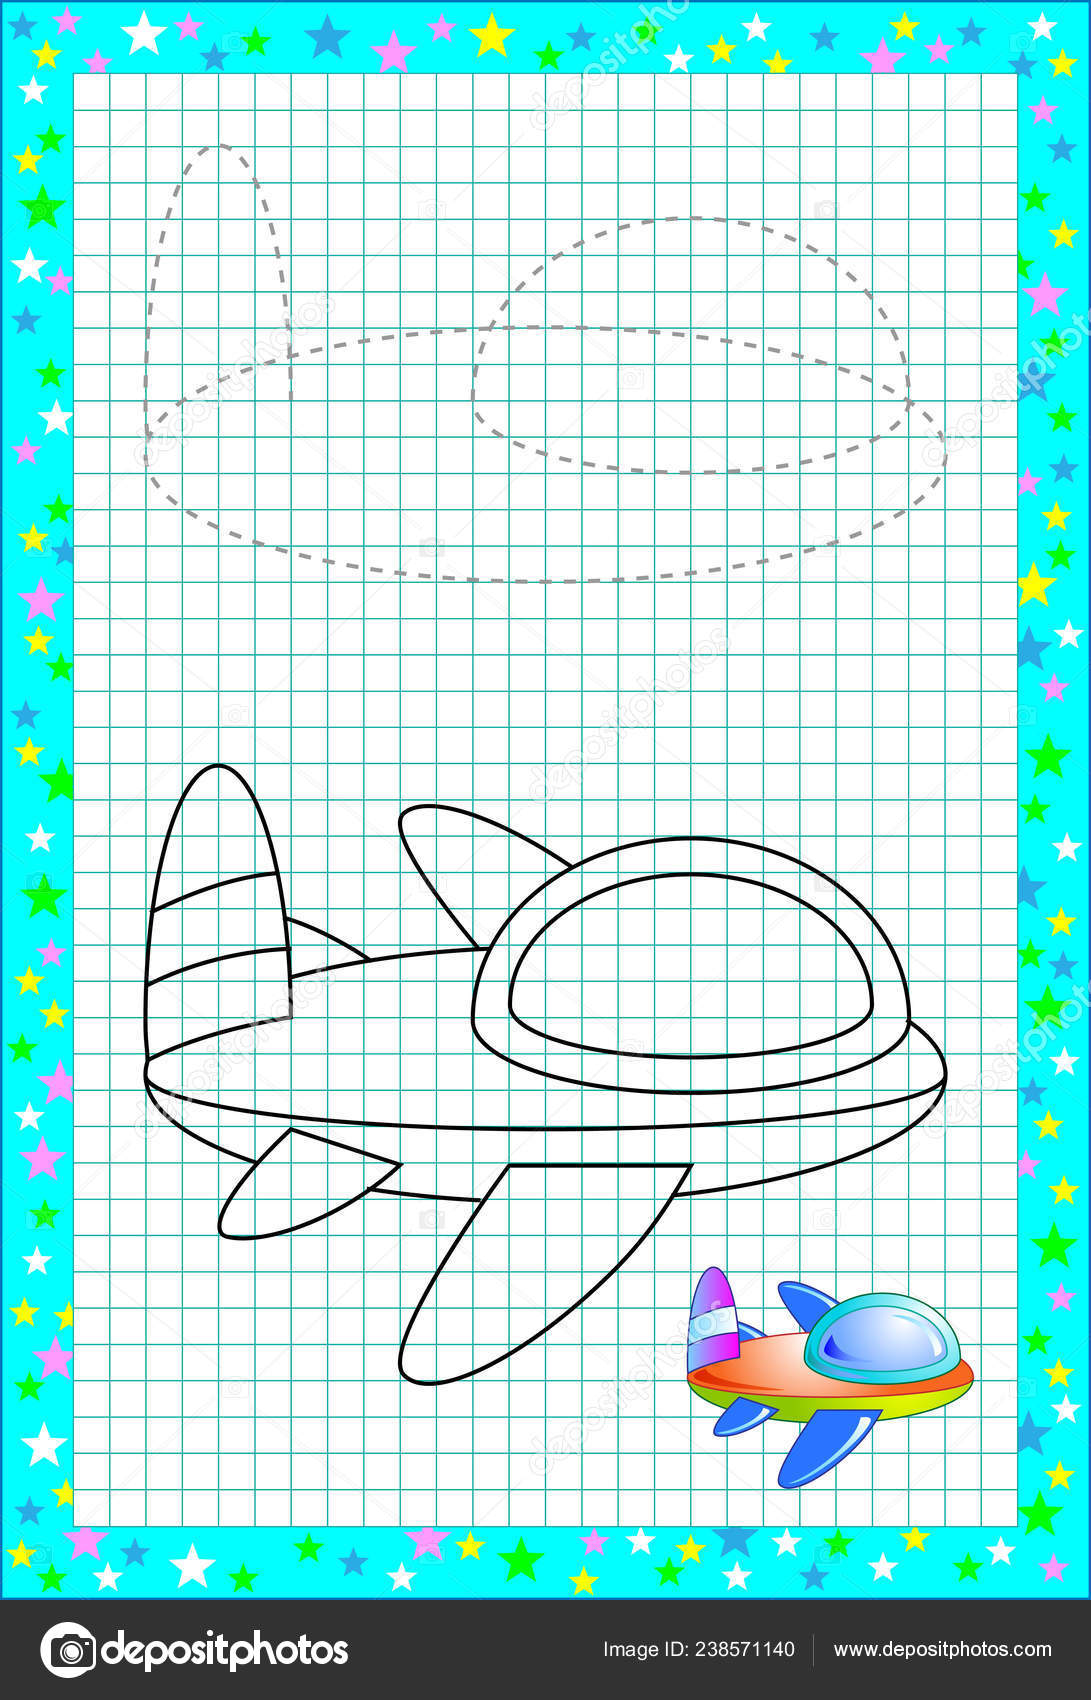 Educational Page Little Children Square Paper Need Draw Paint Cute Stock Vector C Nataljacernecka 238571140